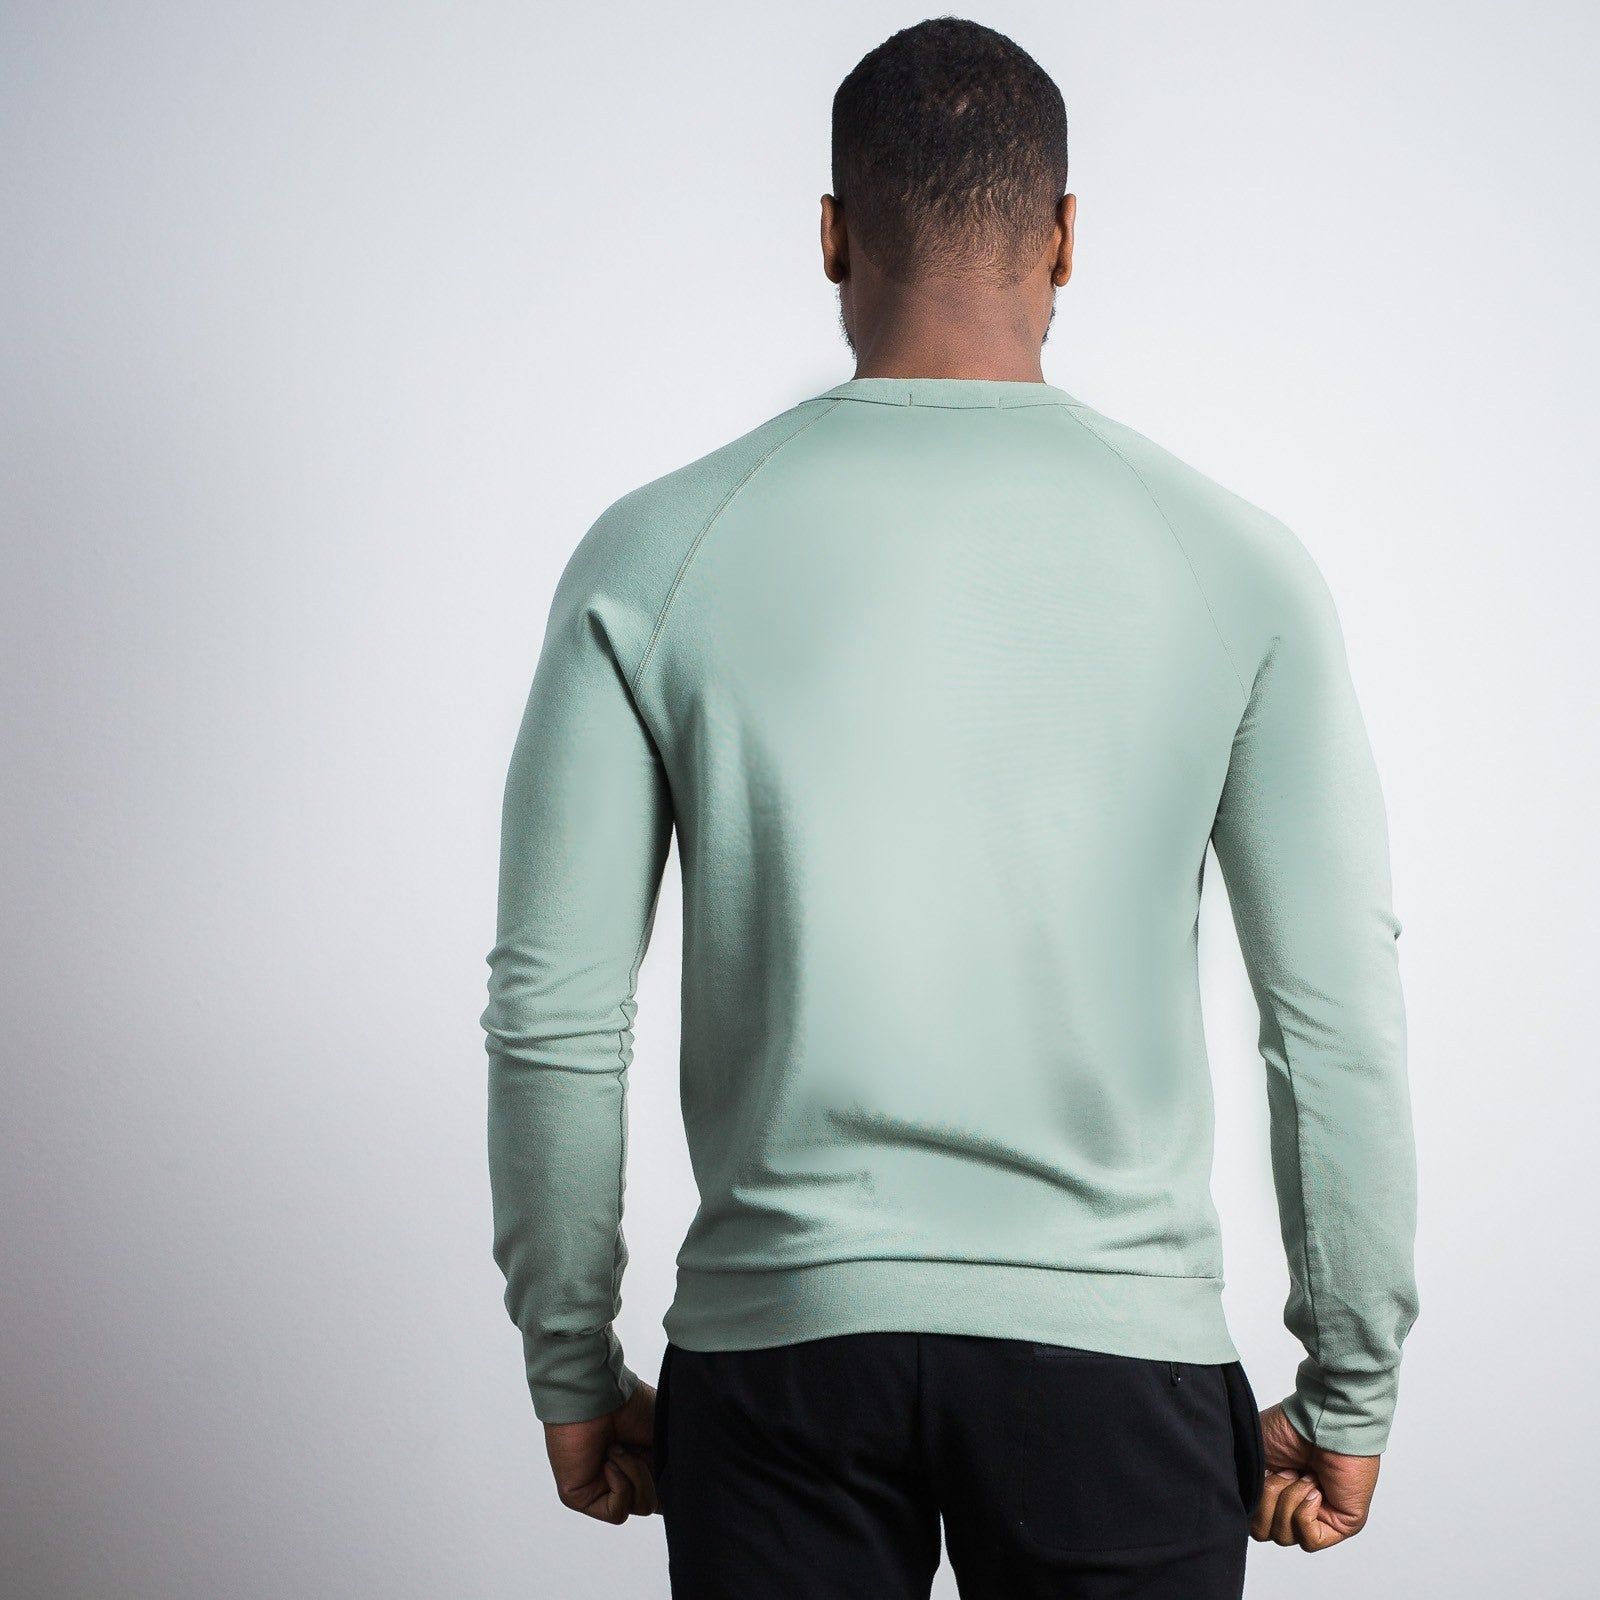 Sage Green Stretch Crewneck Sweatshirt - Sweat Tailor